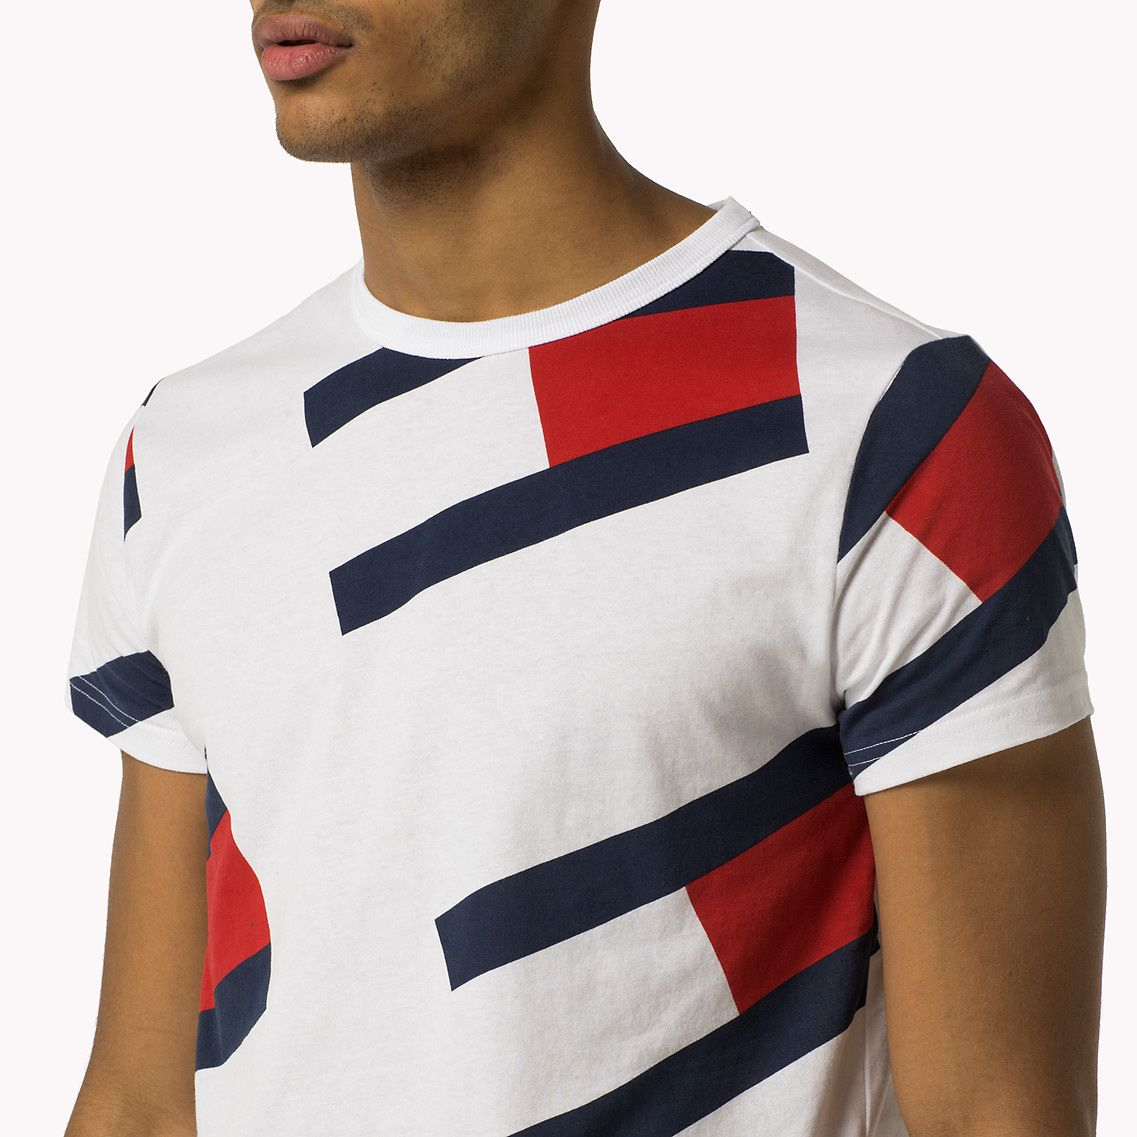 Shop The White All Over Flag T Shirt And Explore The Tommy Hilfiger T Shirts Collection For Men Free Returns Amp Tommy Hilfiger Tommy Hilfiger T Shirt Tommy